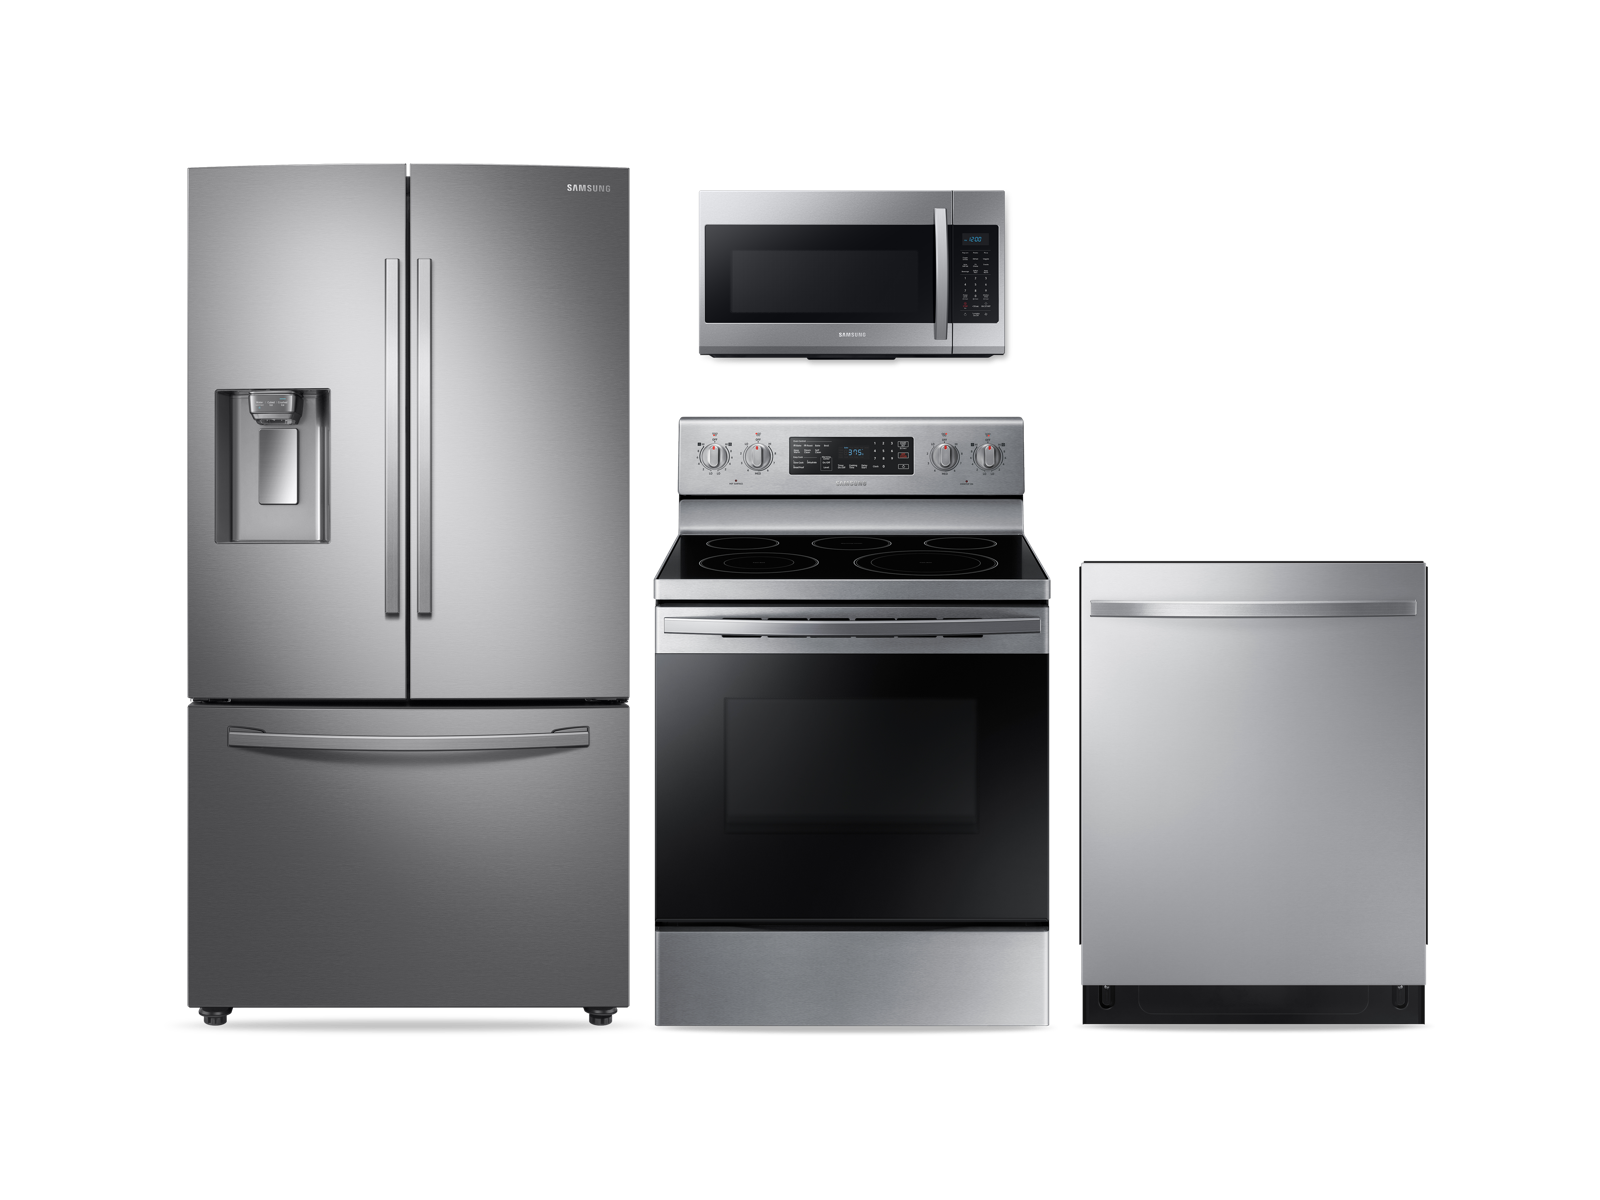 Large Capacity 3-door Refrigerator + Electric Range + StormWash Dishwasher + Microwave Kitchen Package in Stainless Steel